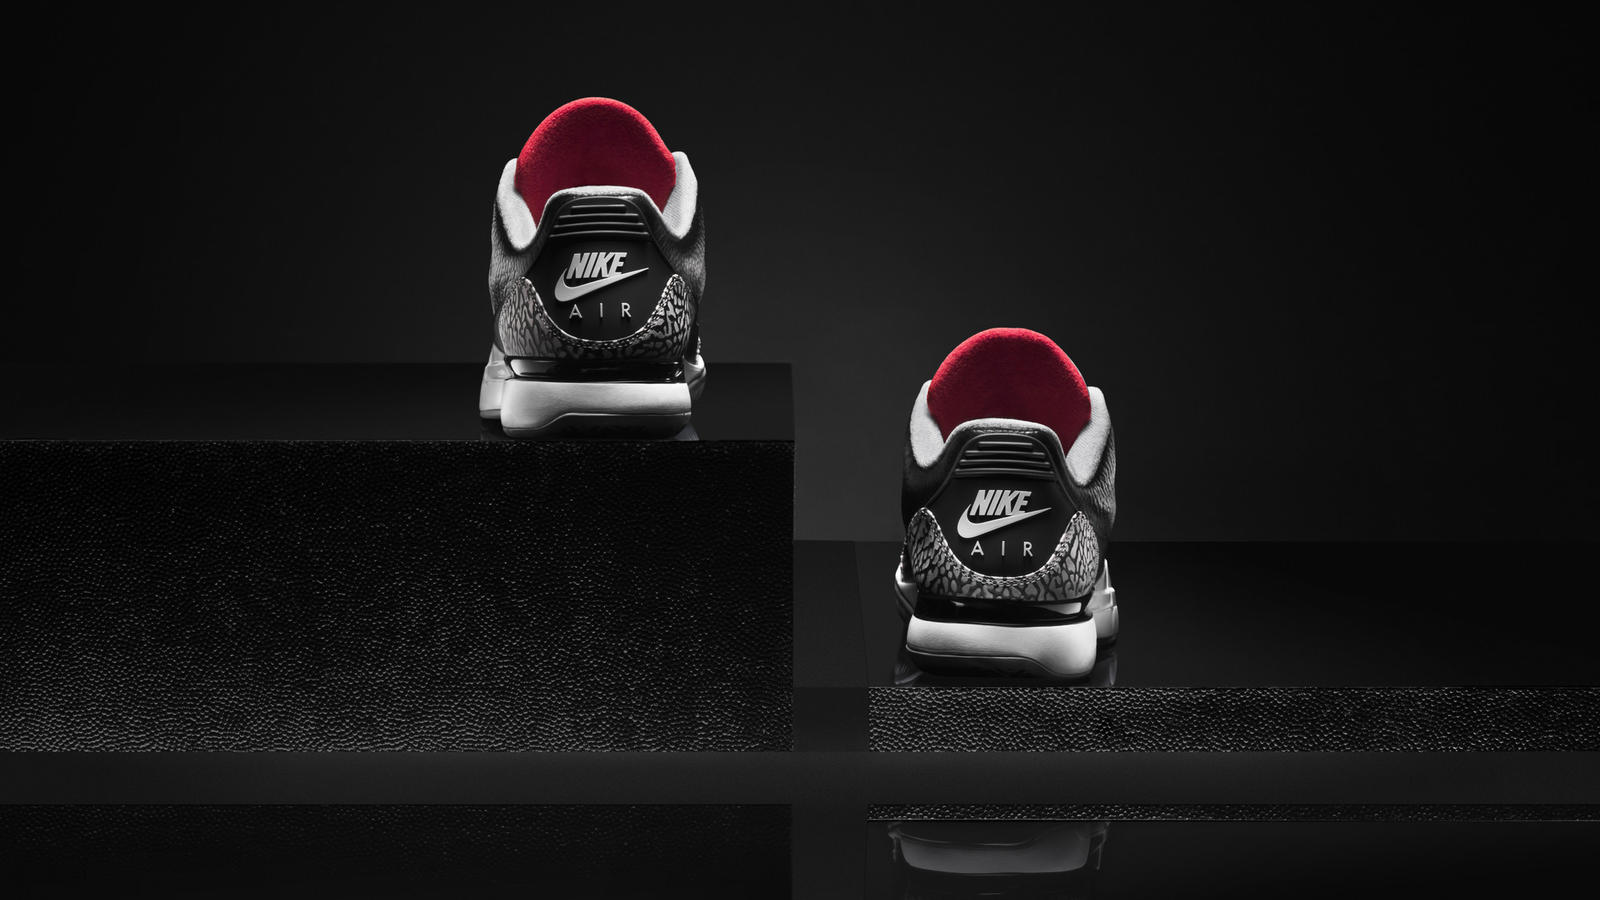 31d4e5d521f Back in Black: Nike Court Presents Latest Zoom Vapor AJ3 by Jordan ...